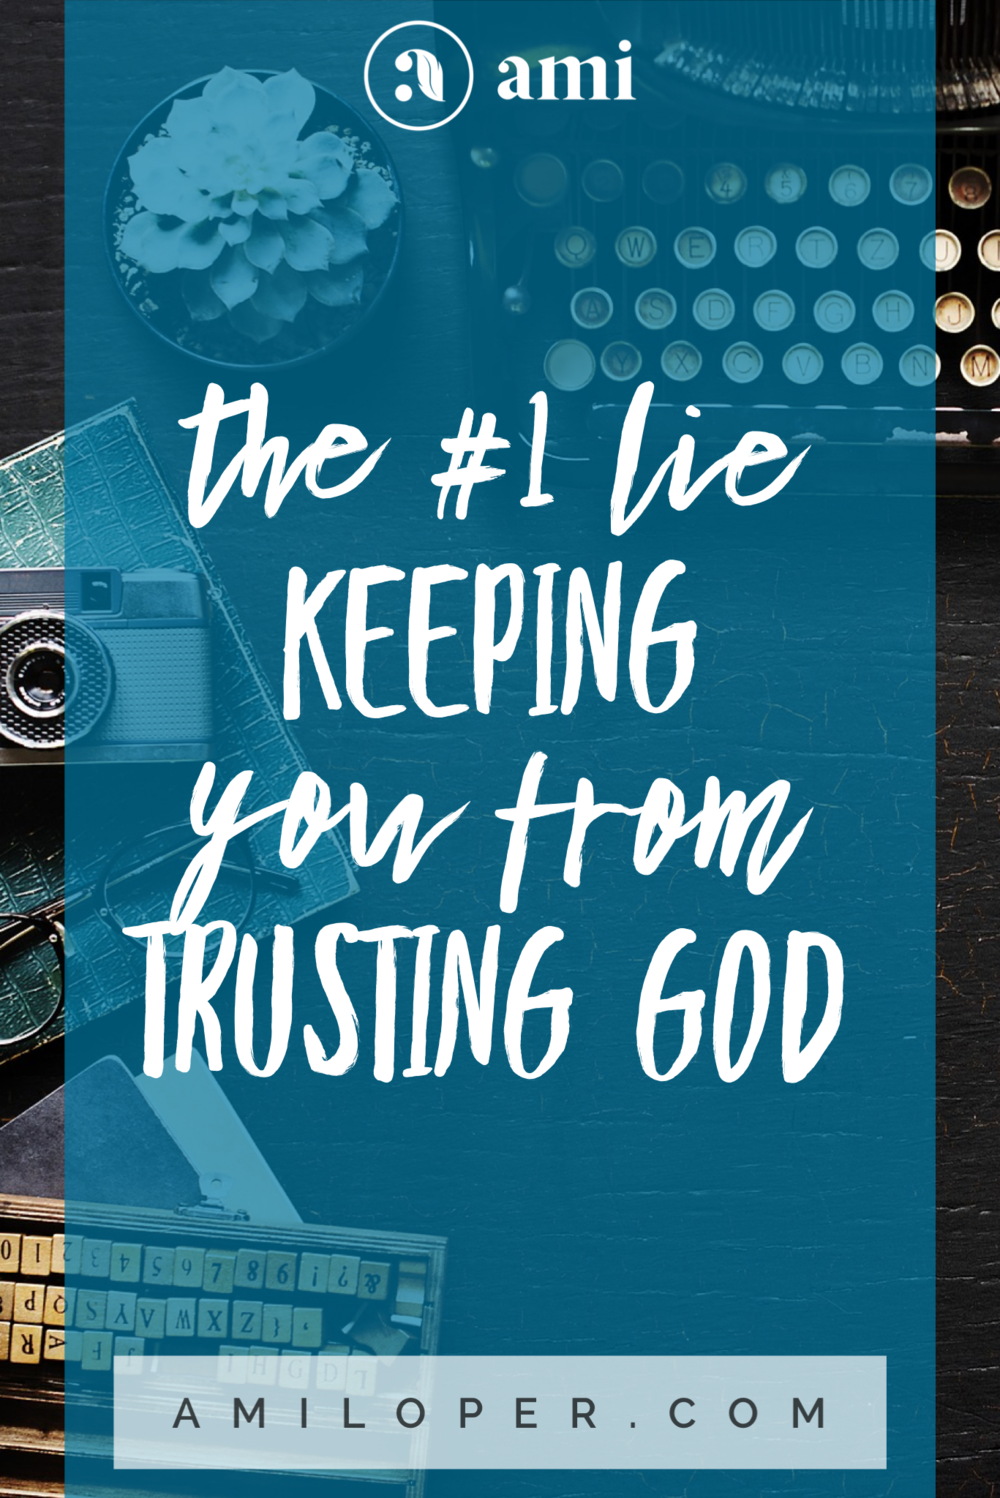 This last year, as I struggled to learn to trust the Lord in a specific and often tested area, I began to feel the whisper of the enemy tempting me back into worry. This lie has the potential to keep us from trusting the Lord. It's the topic of my latest blog. Come take a quick 3 minute read and see how to win this battle! #TrustInGod #ChristianBlog #Prayer